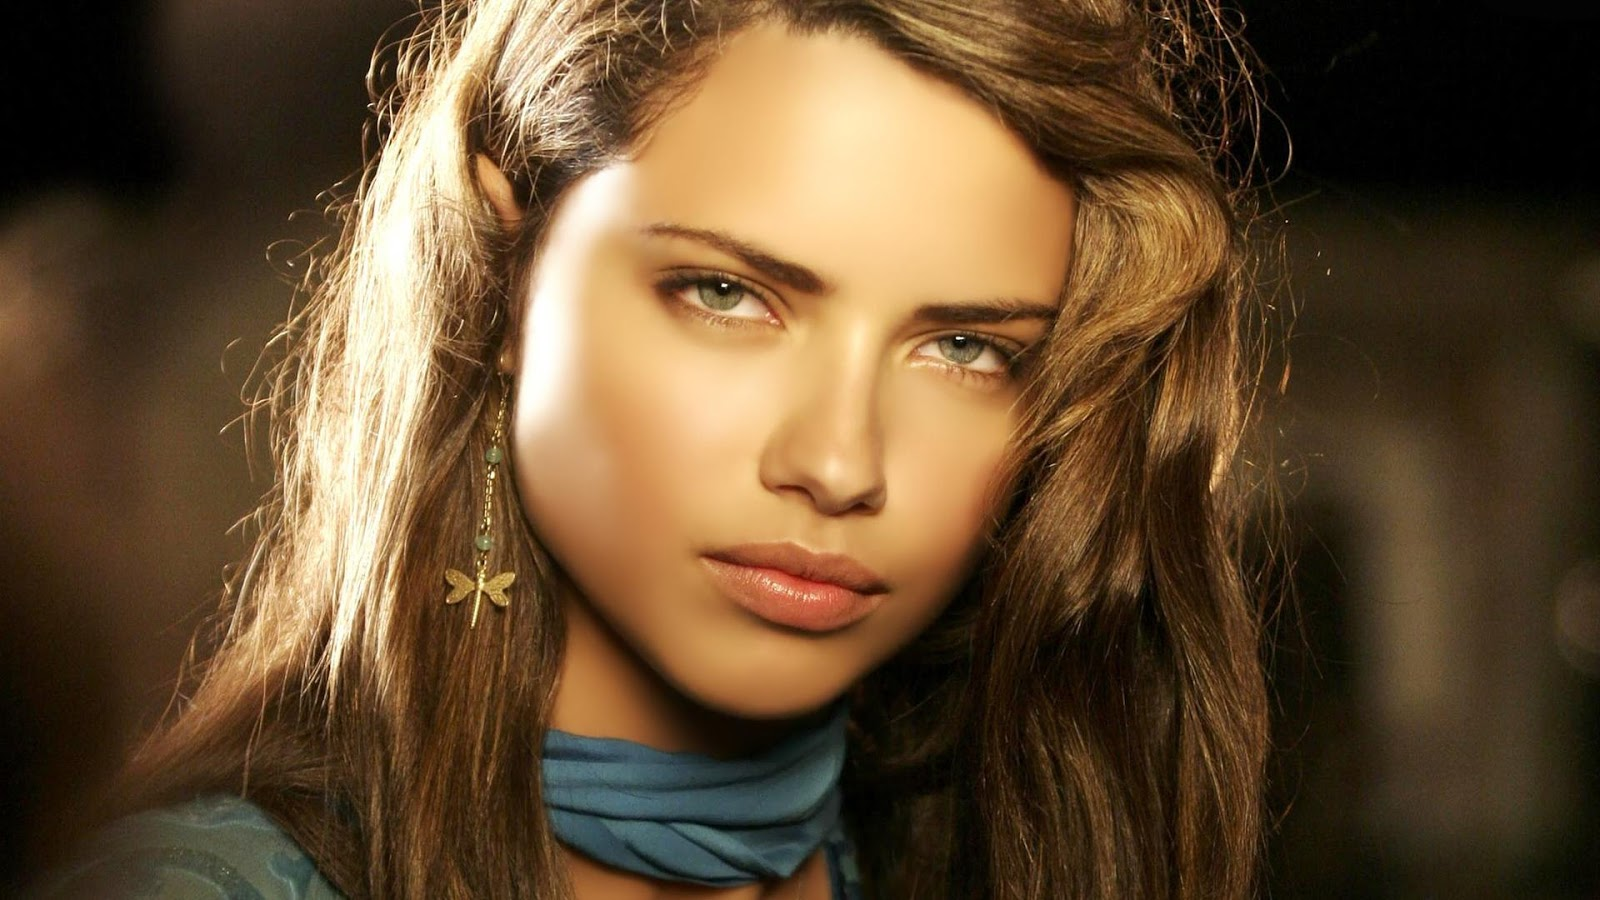 Adriana Lima young Face